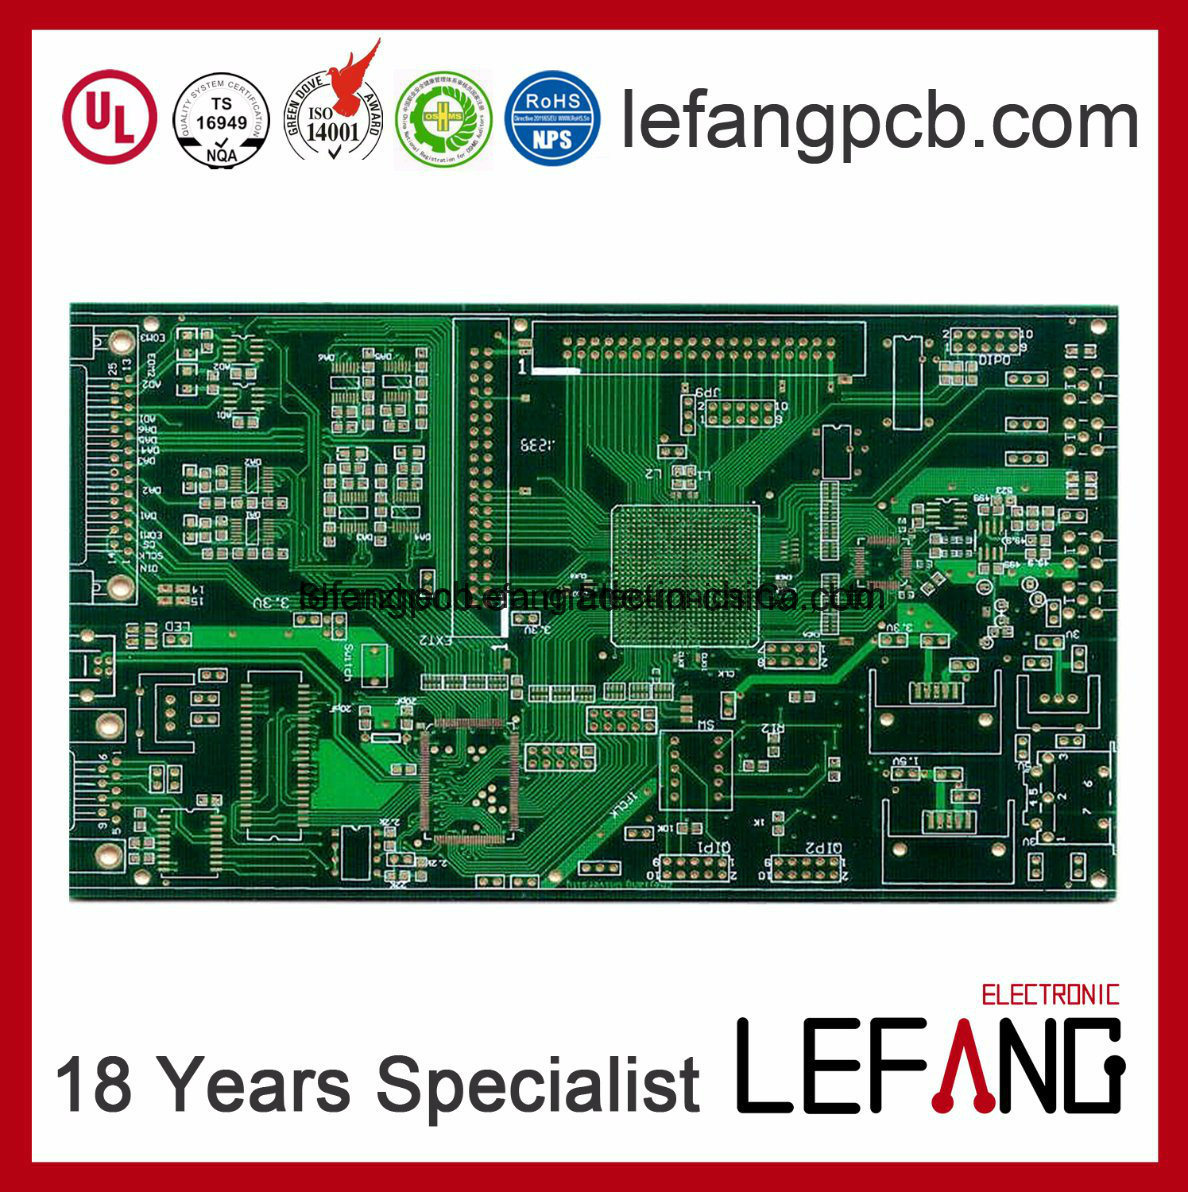 Wholesale Amplifier Circuit Buy Reliable From 3000w Stereo Power Hasl Lead Free Blind Vias Pcb Board For Communication